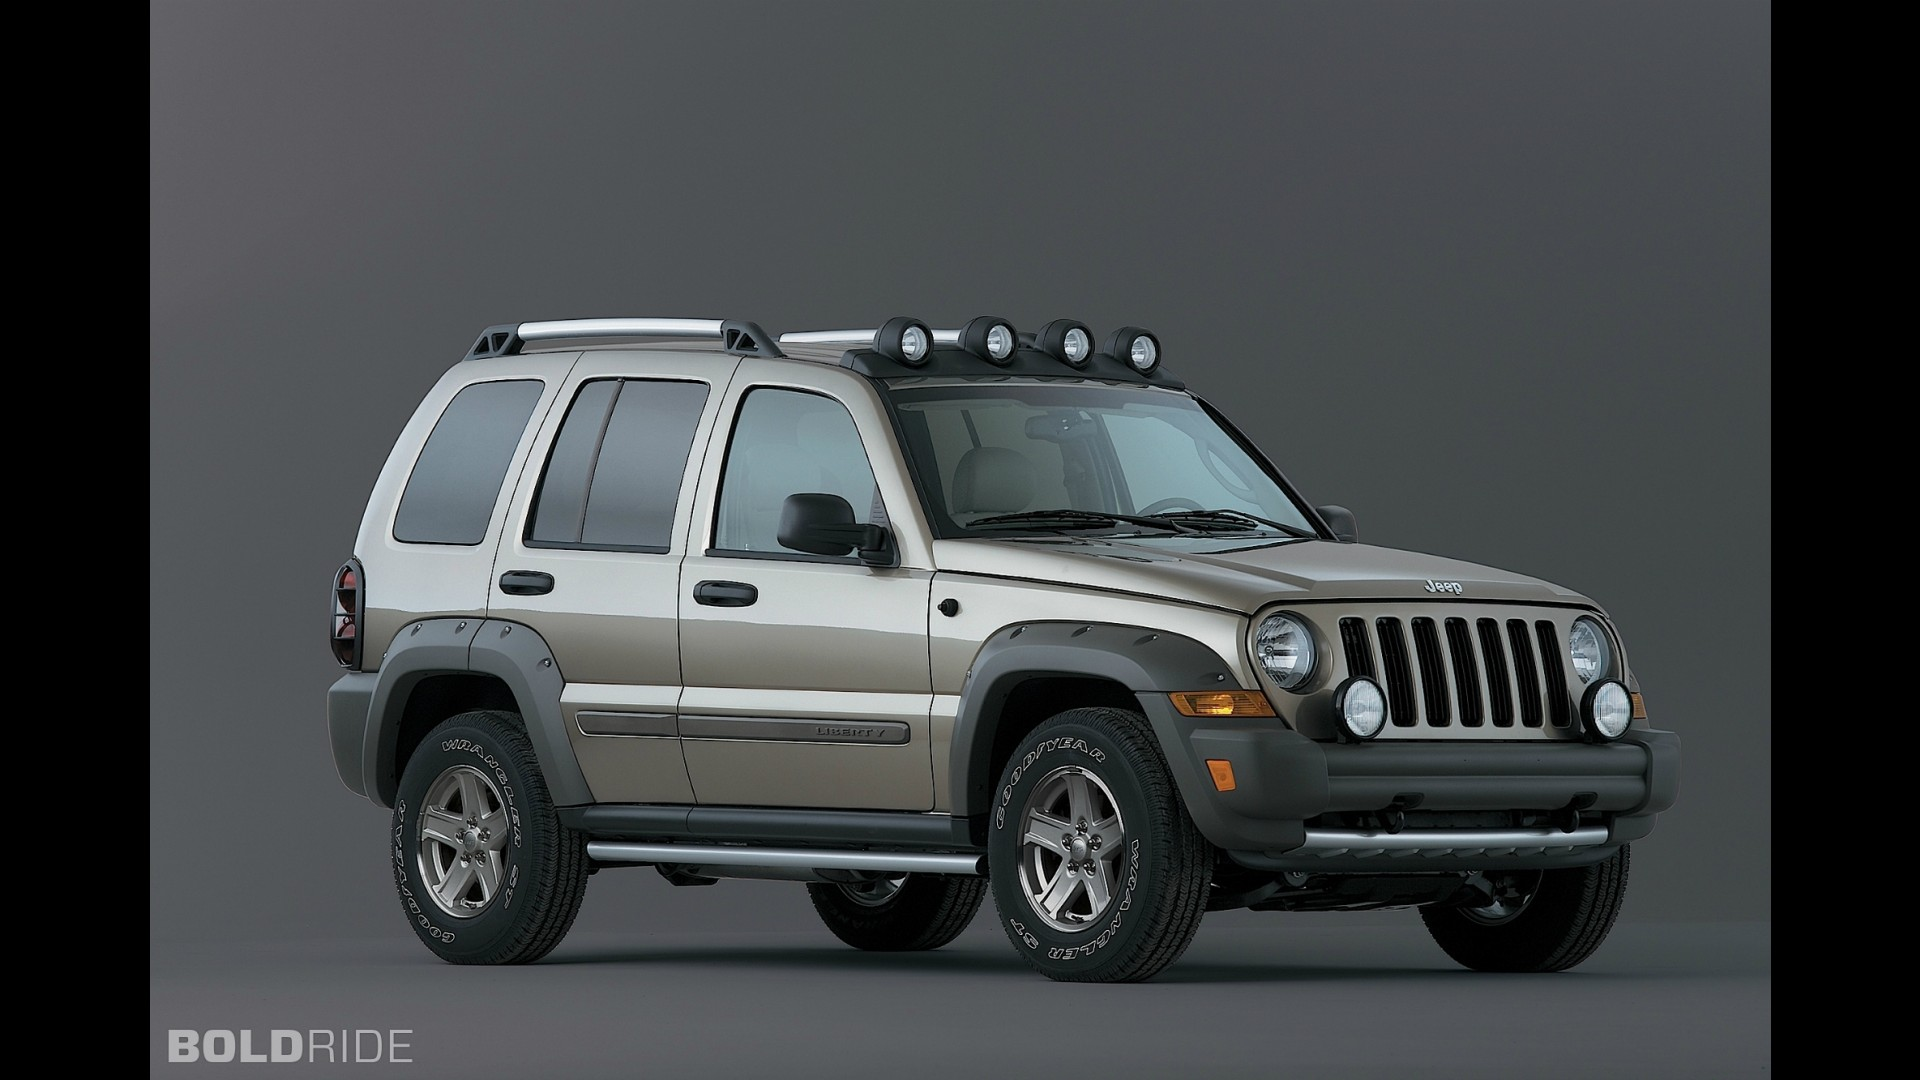 ... Jeep Liberty 3 7 Engine Diagram Jeep 37 Timing Diagram Wiring Diagram  Odicis ...